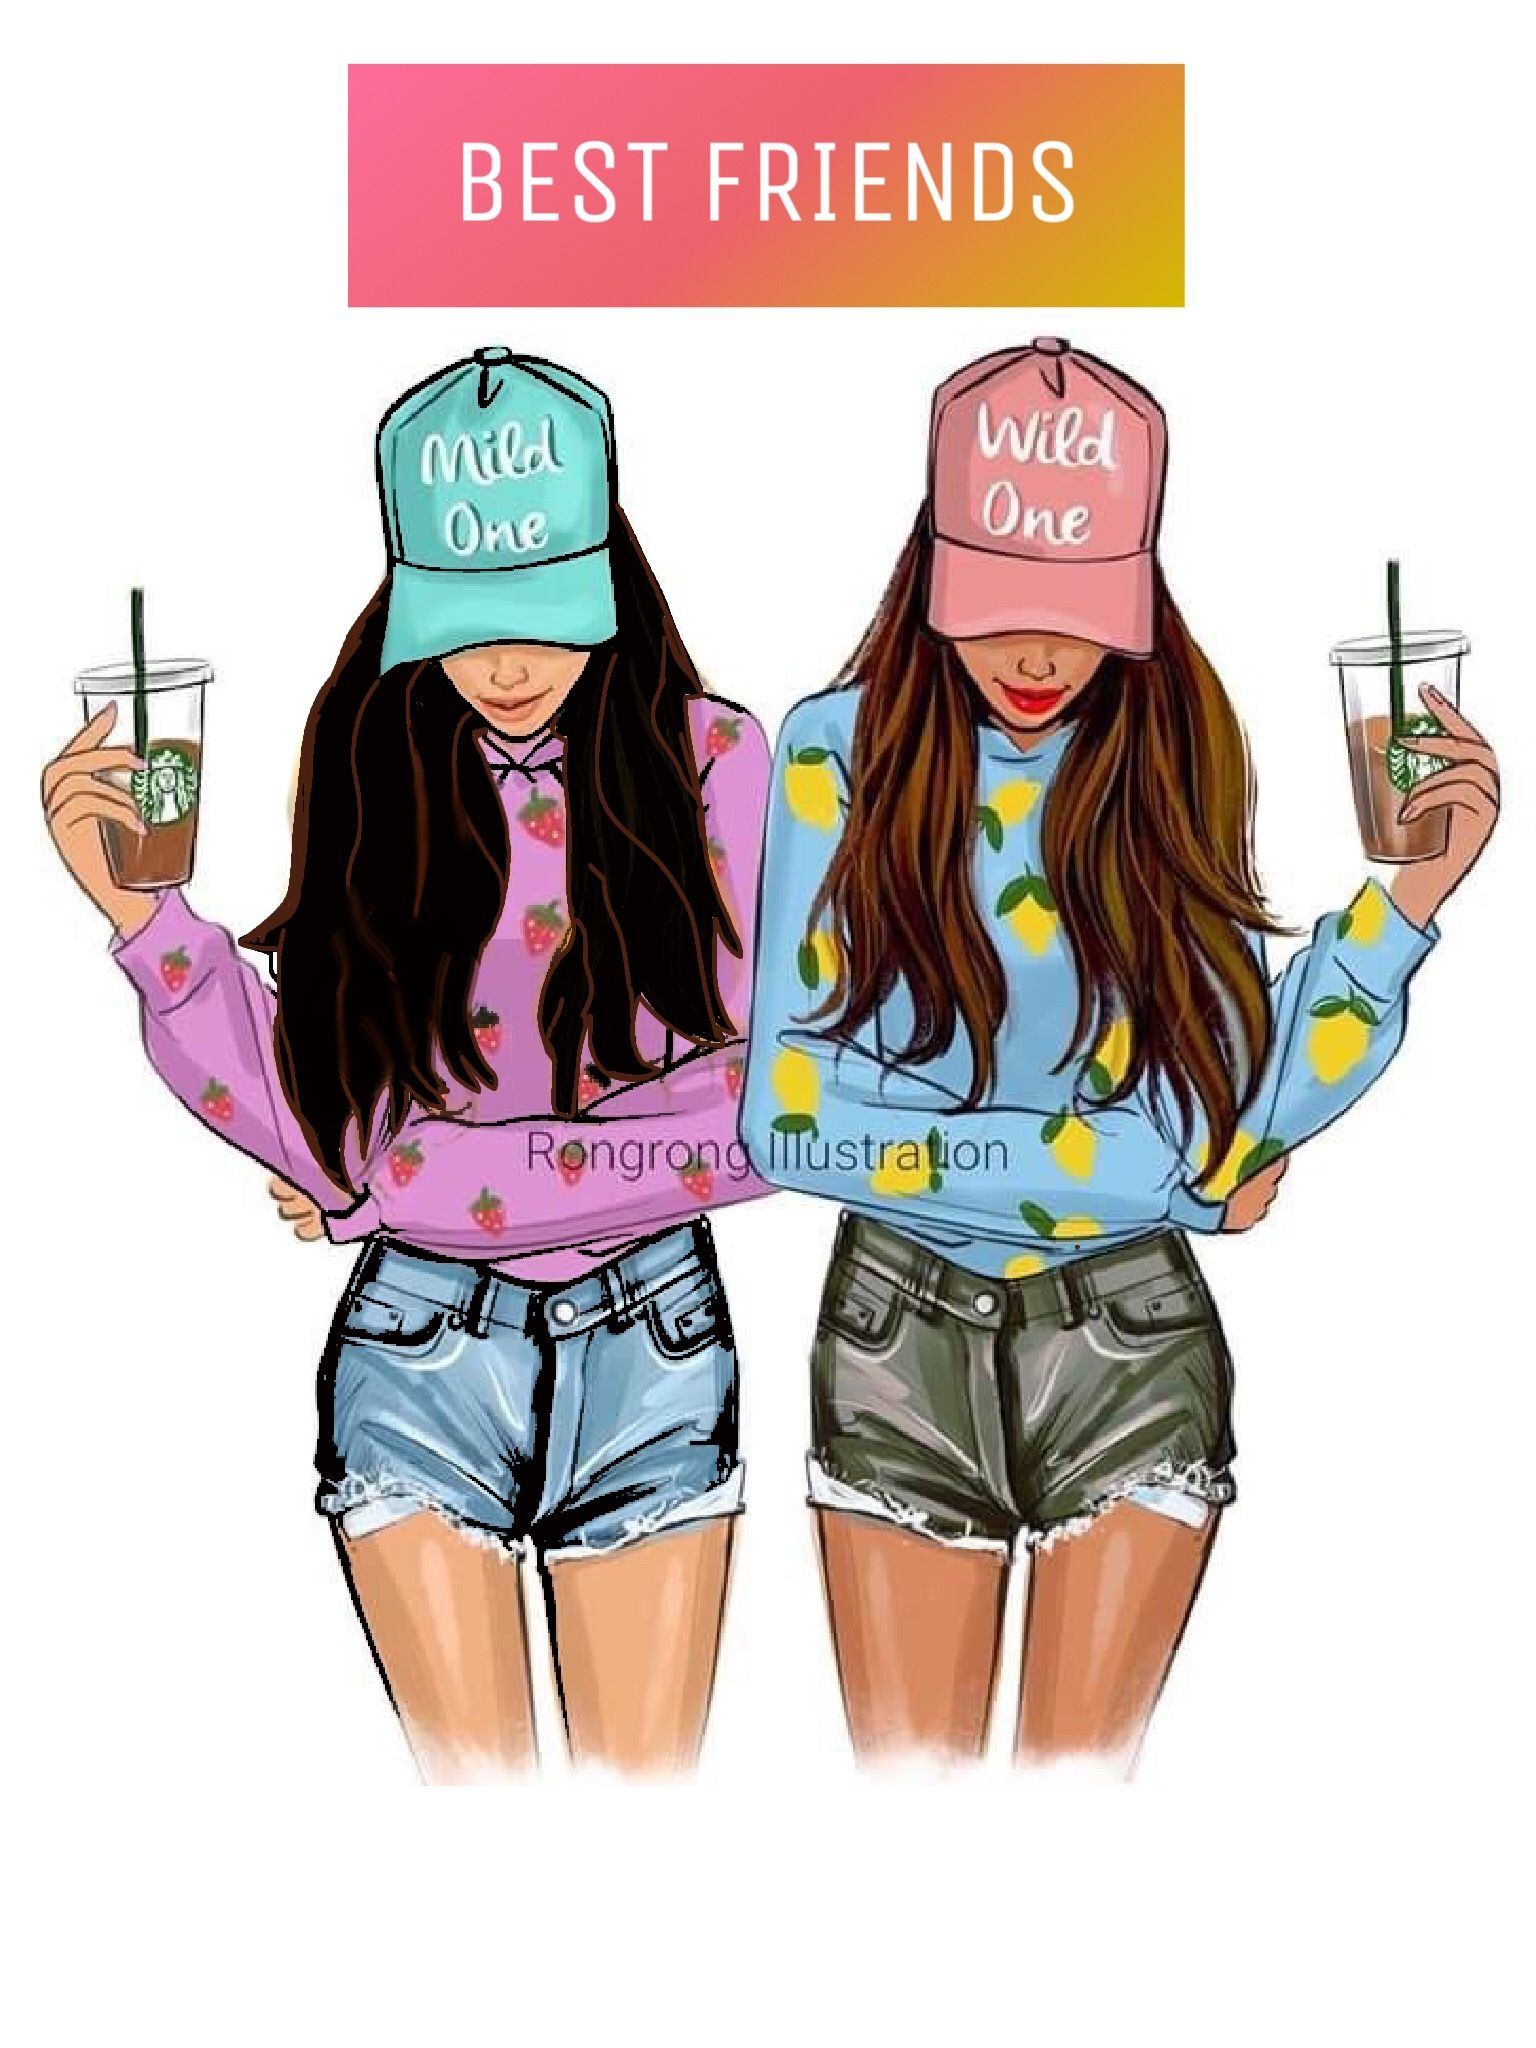 Pin By Henan Hamza On Bday With Images Bff Drawings Drawings